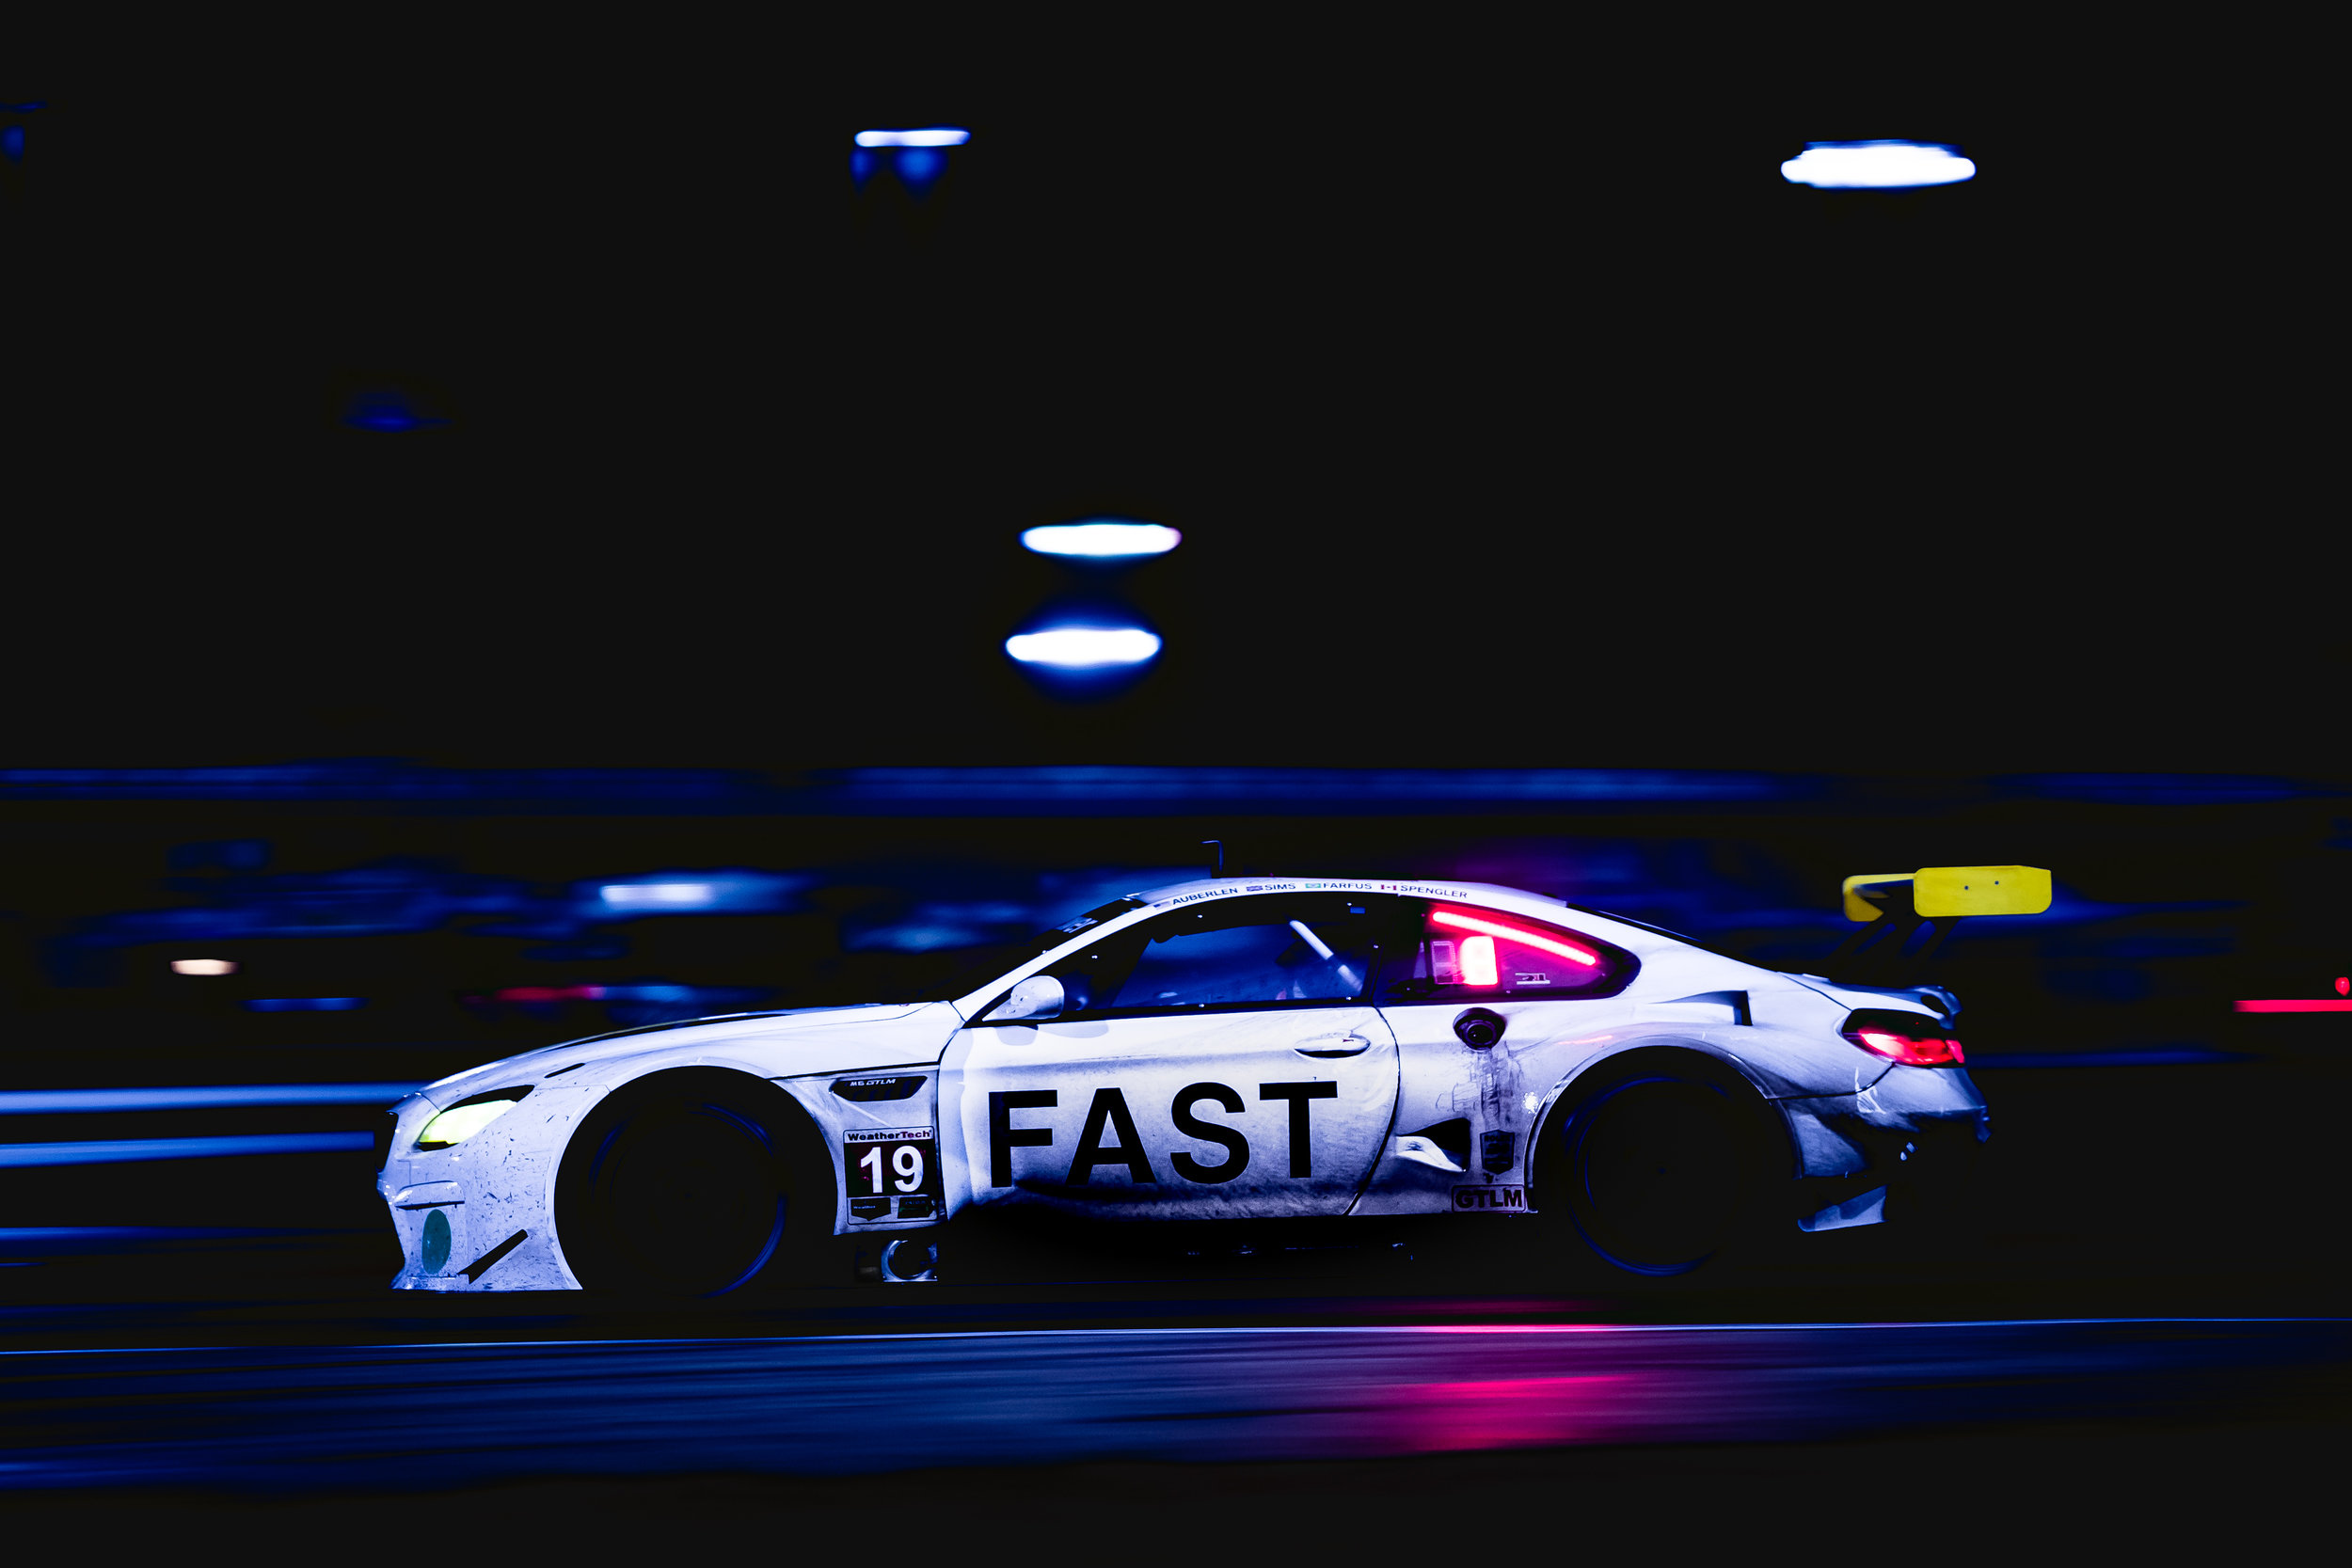 BMW Motorsport - IMSA 24 Hours of Daytona 2017-3034-2.jpg